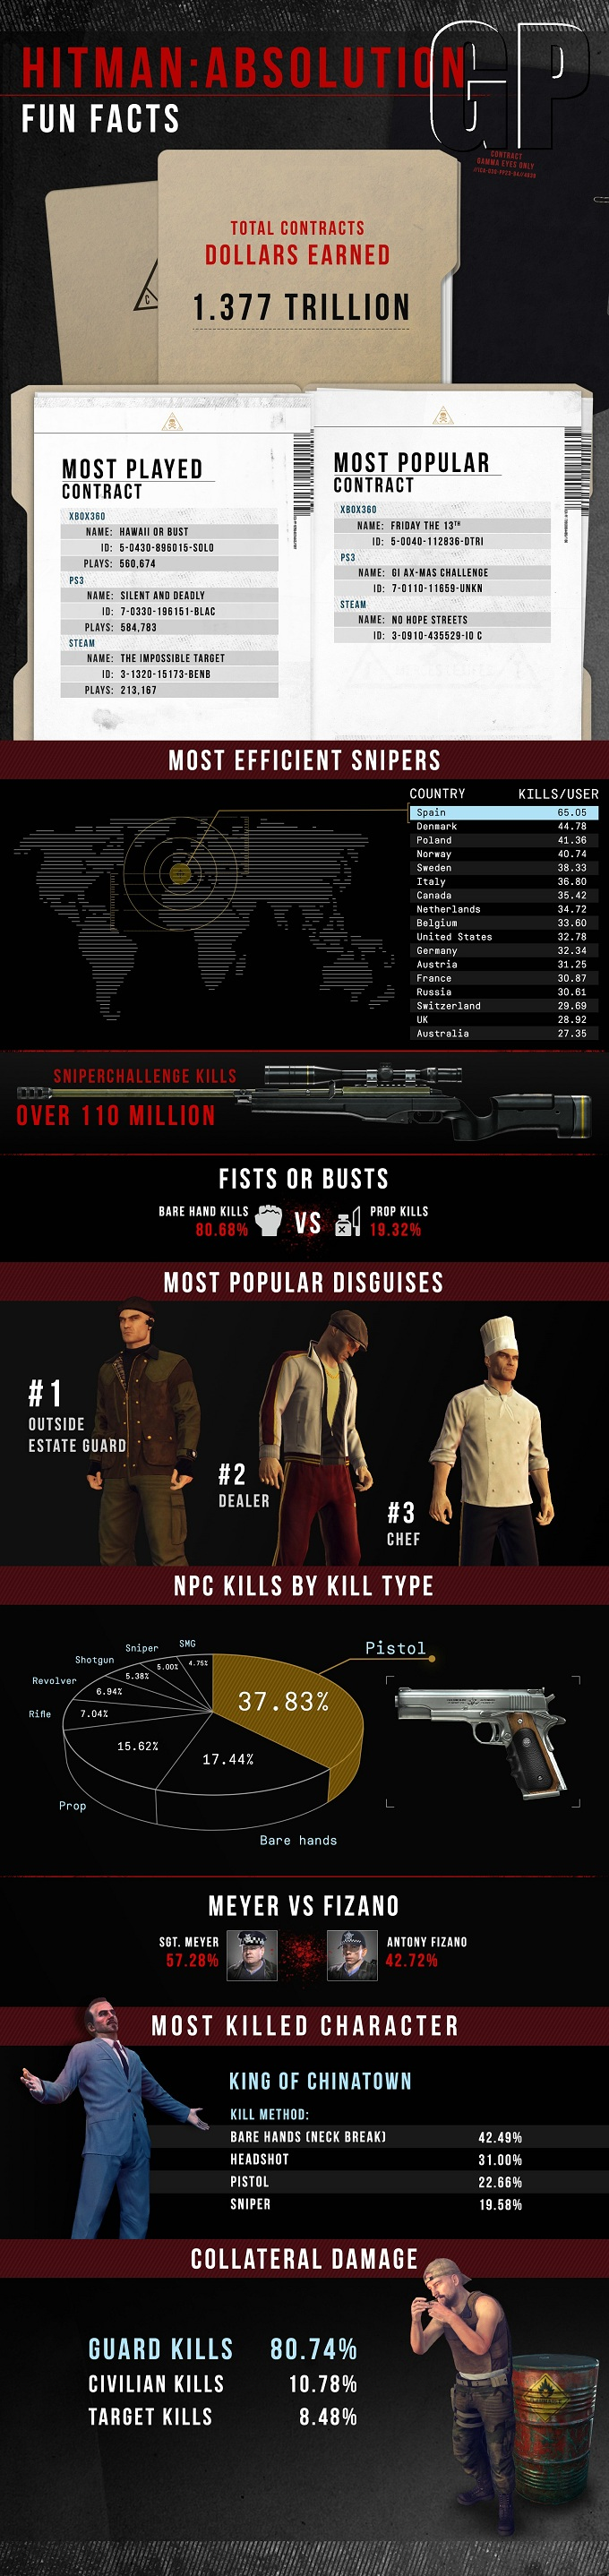 4752HitmanAbsolution_Contracts_infographic